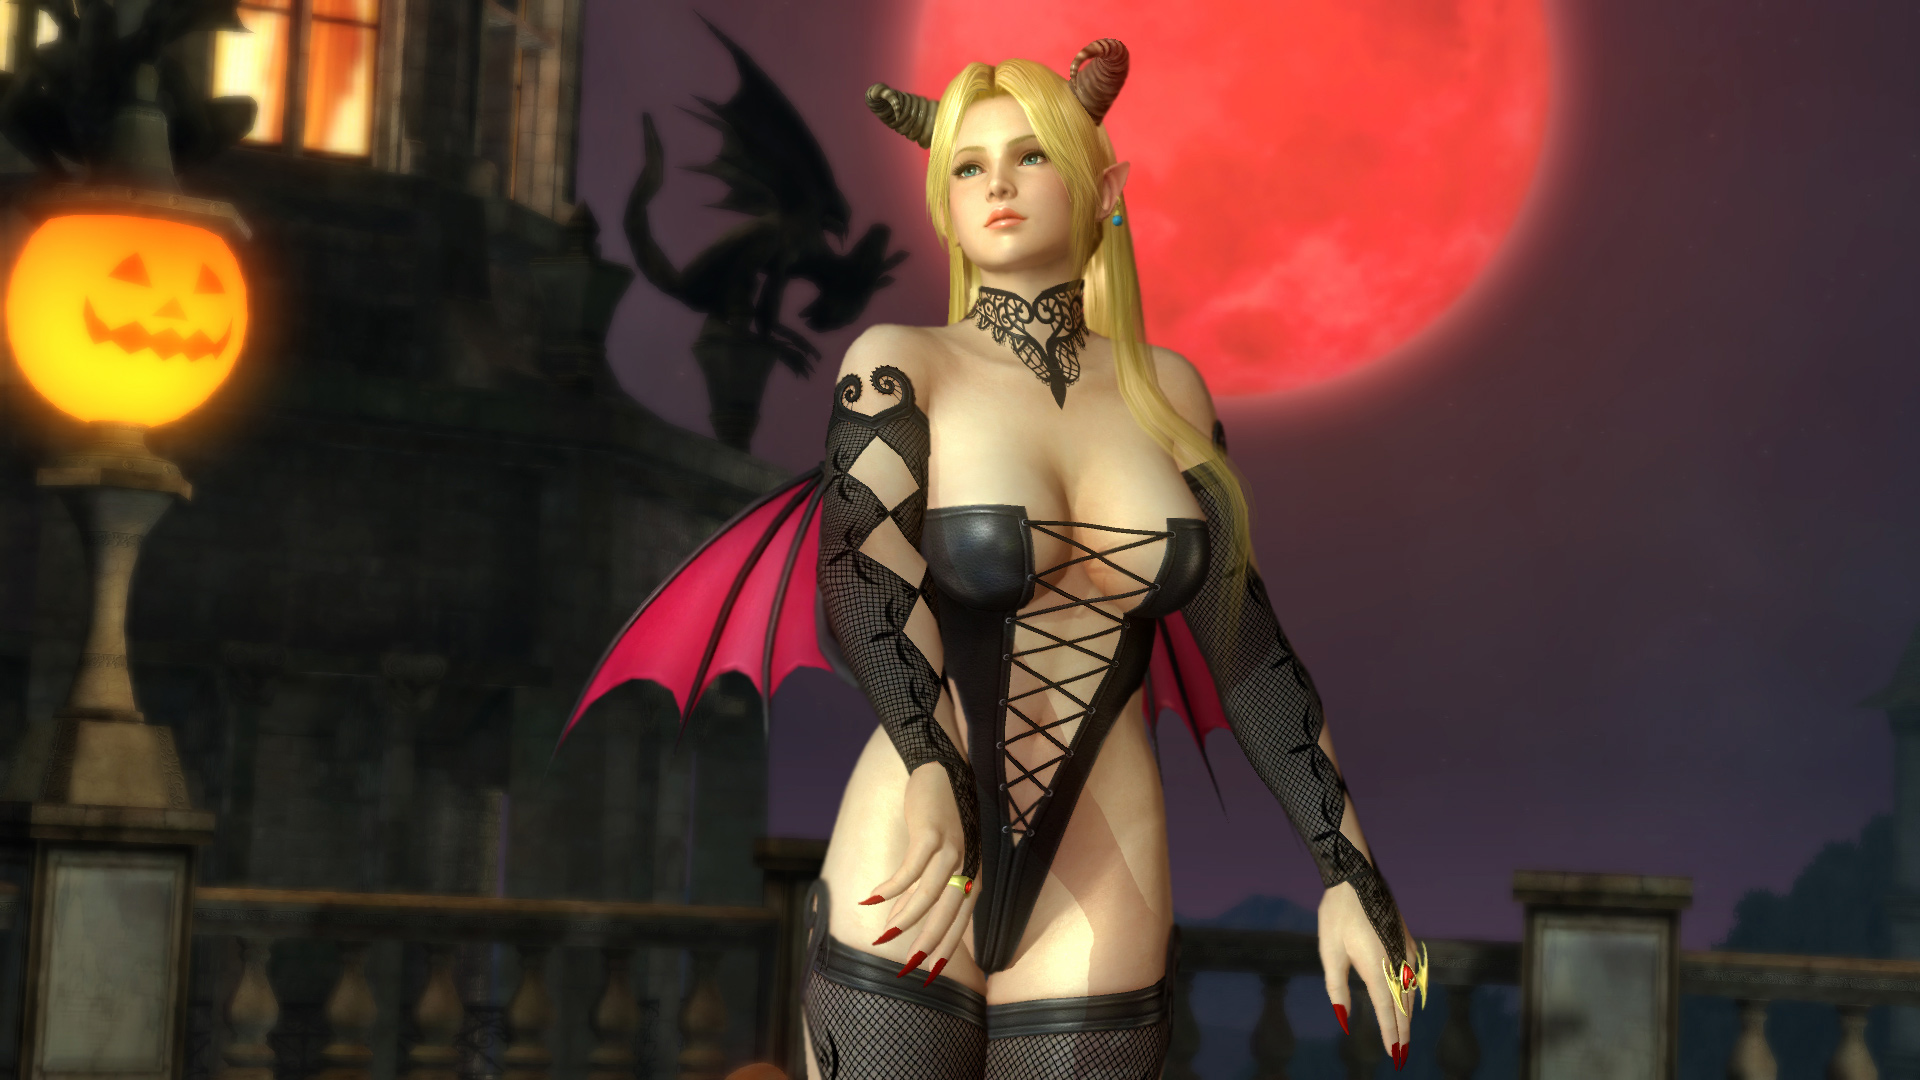 Busty nude succubus nackt picture